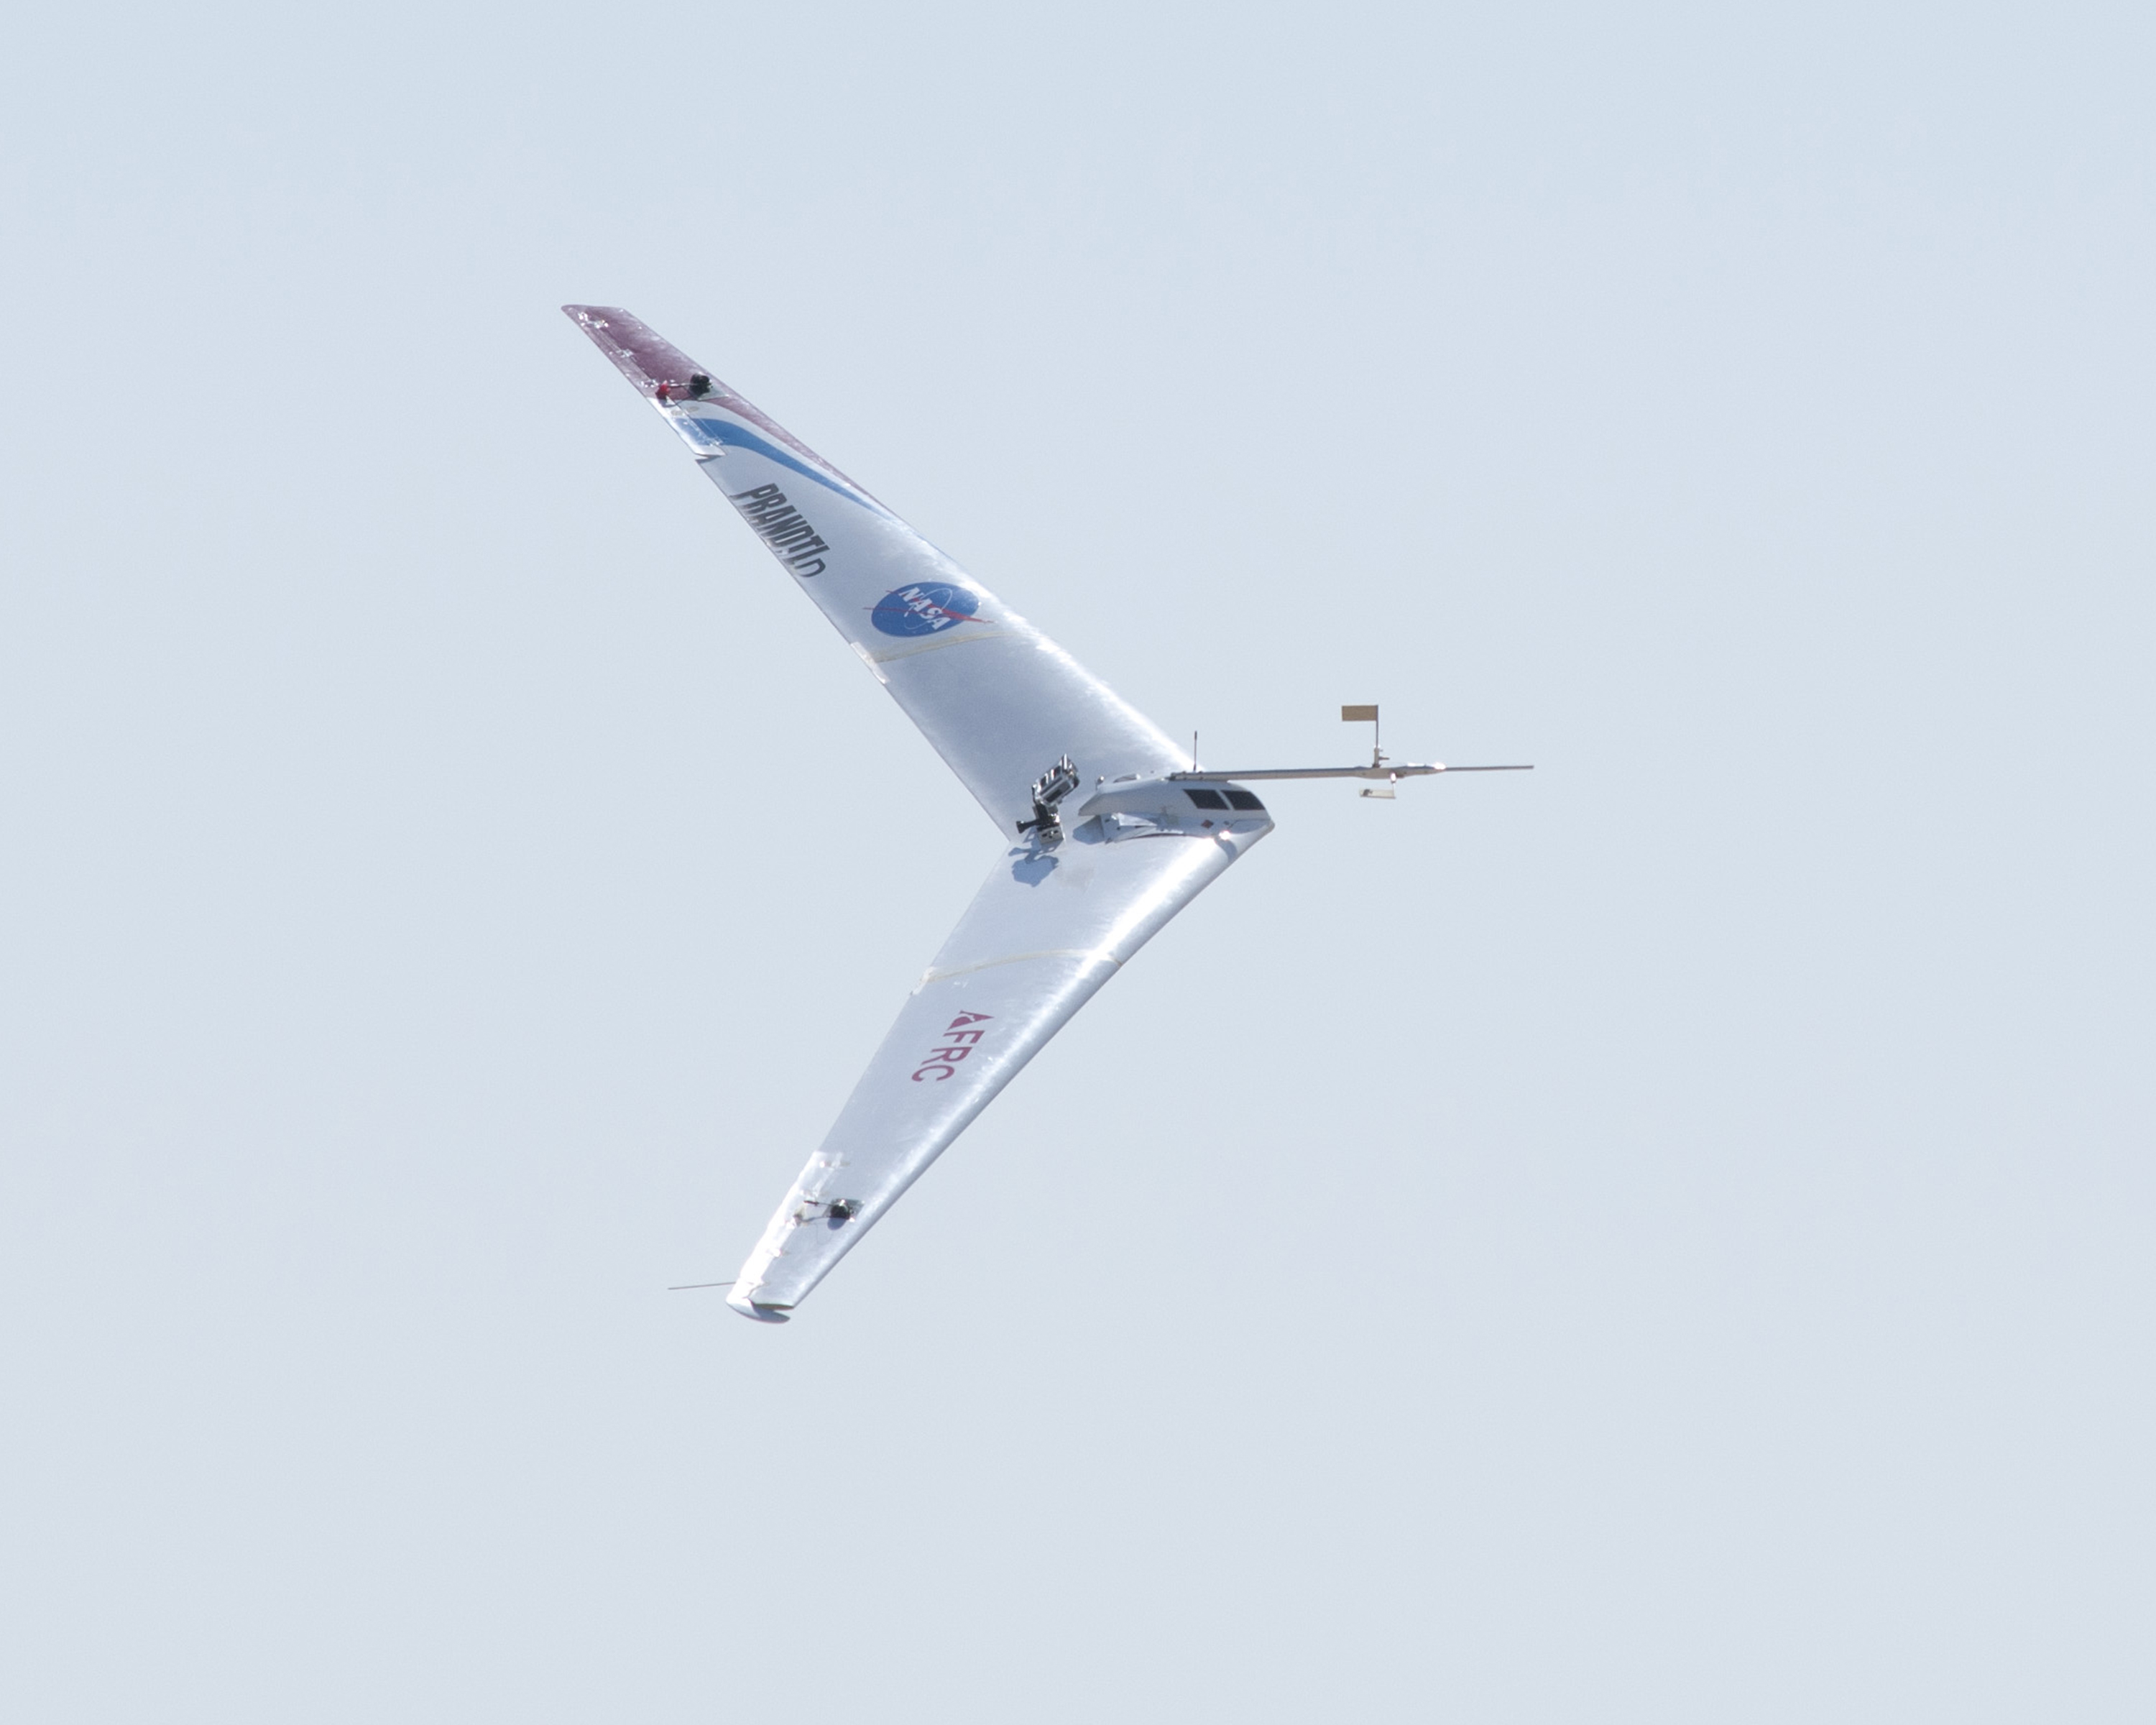 Ten Engine Electric Plane Completes Successful Flight Test Nasa